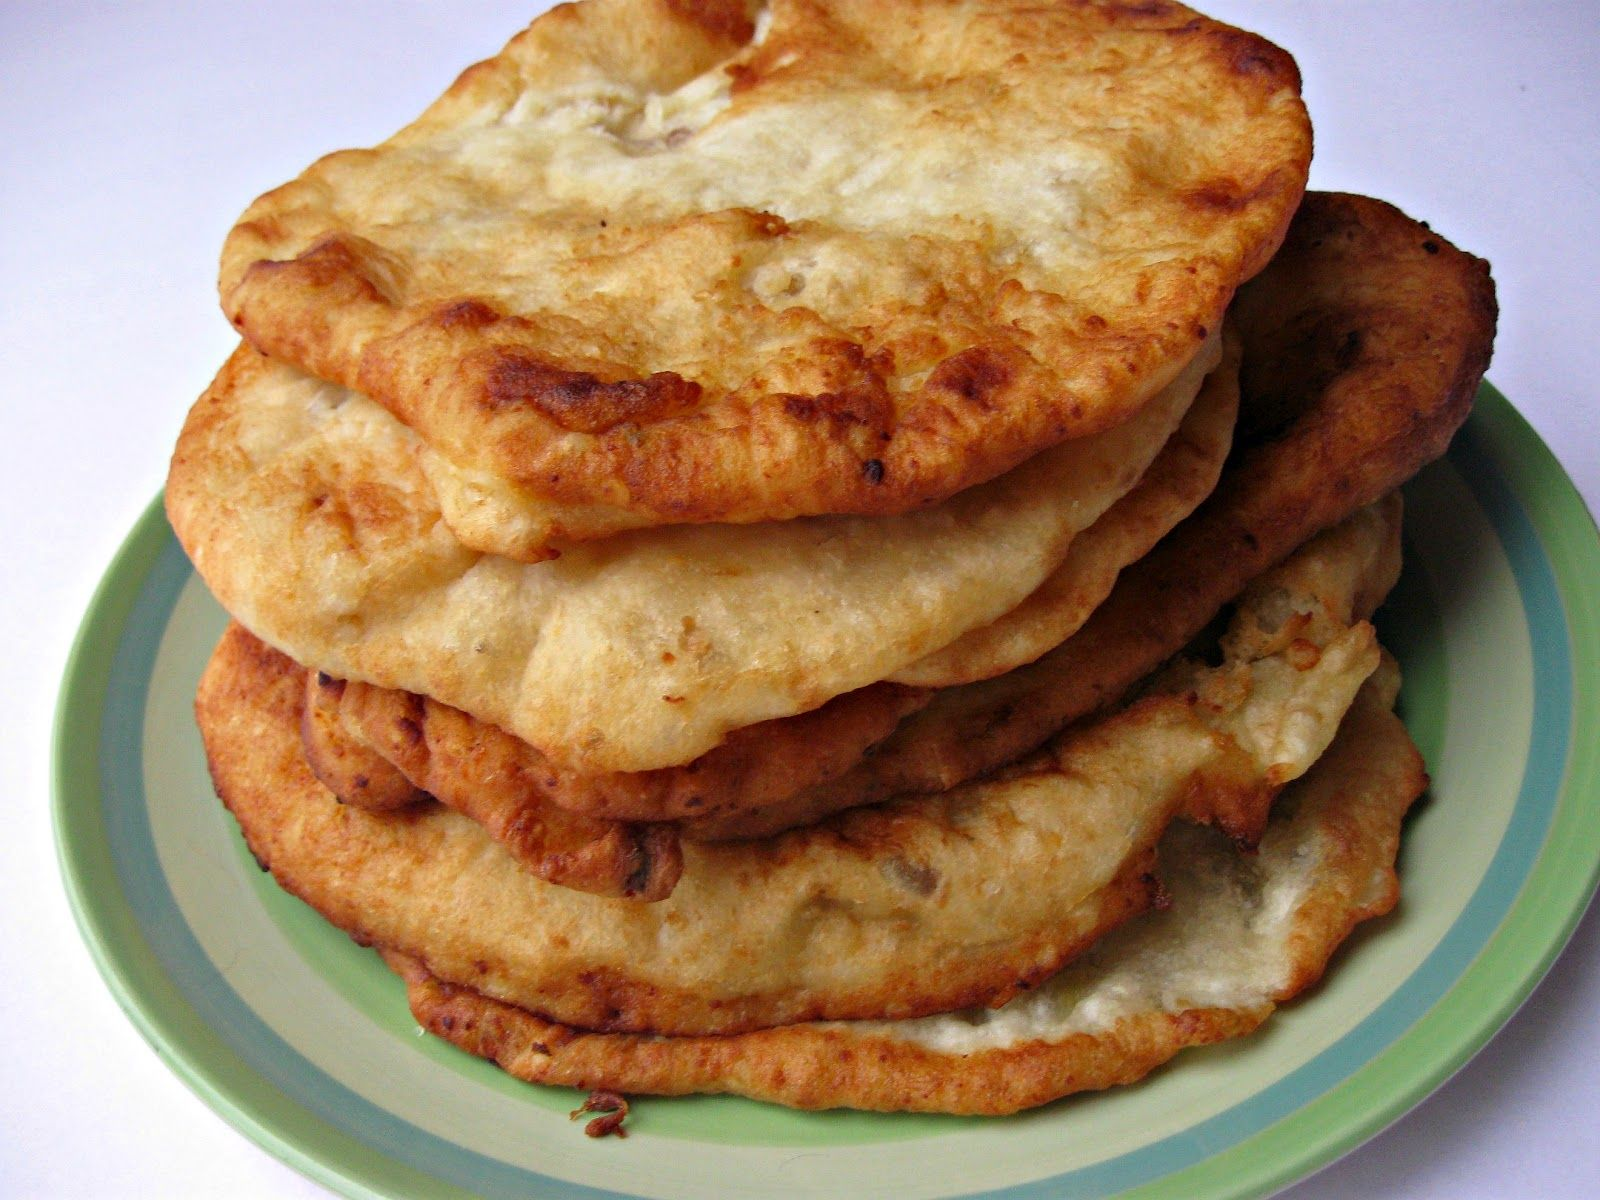 Warmes Essen Ohne Küche This Is Langos Hungarian Fried Bread I 39m Going To Use